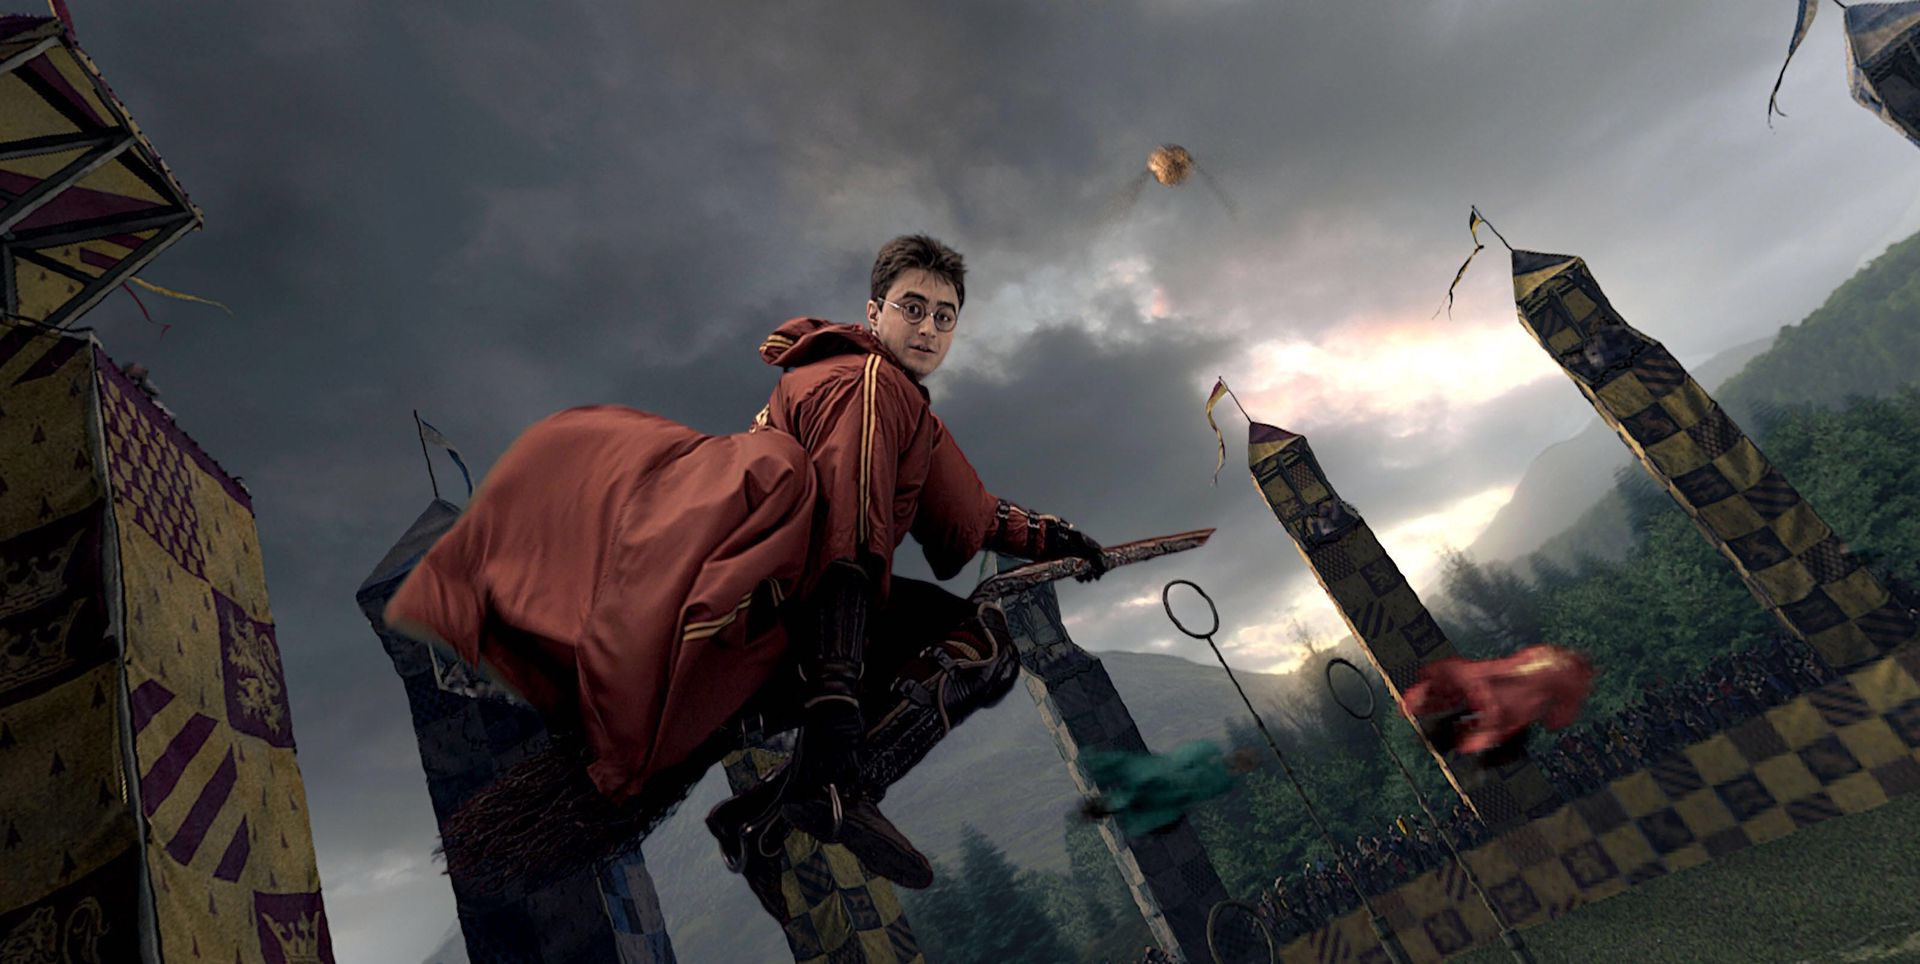 Si torna ad Hogwarts? Nuovo videogame di Harry Potter in uscita thumbnail